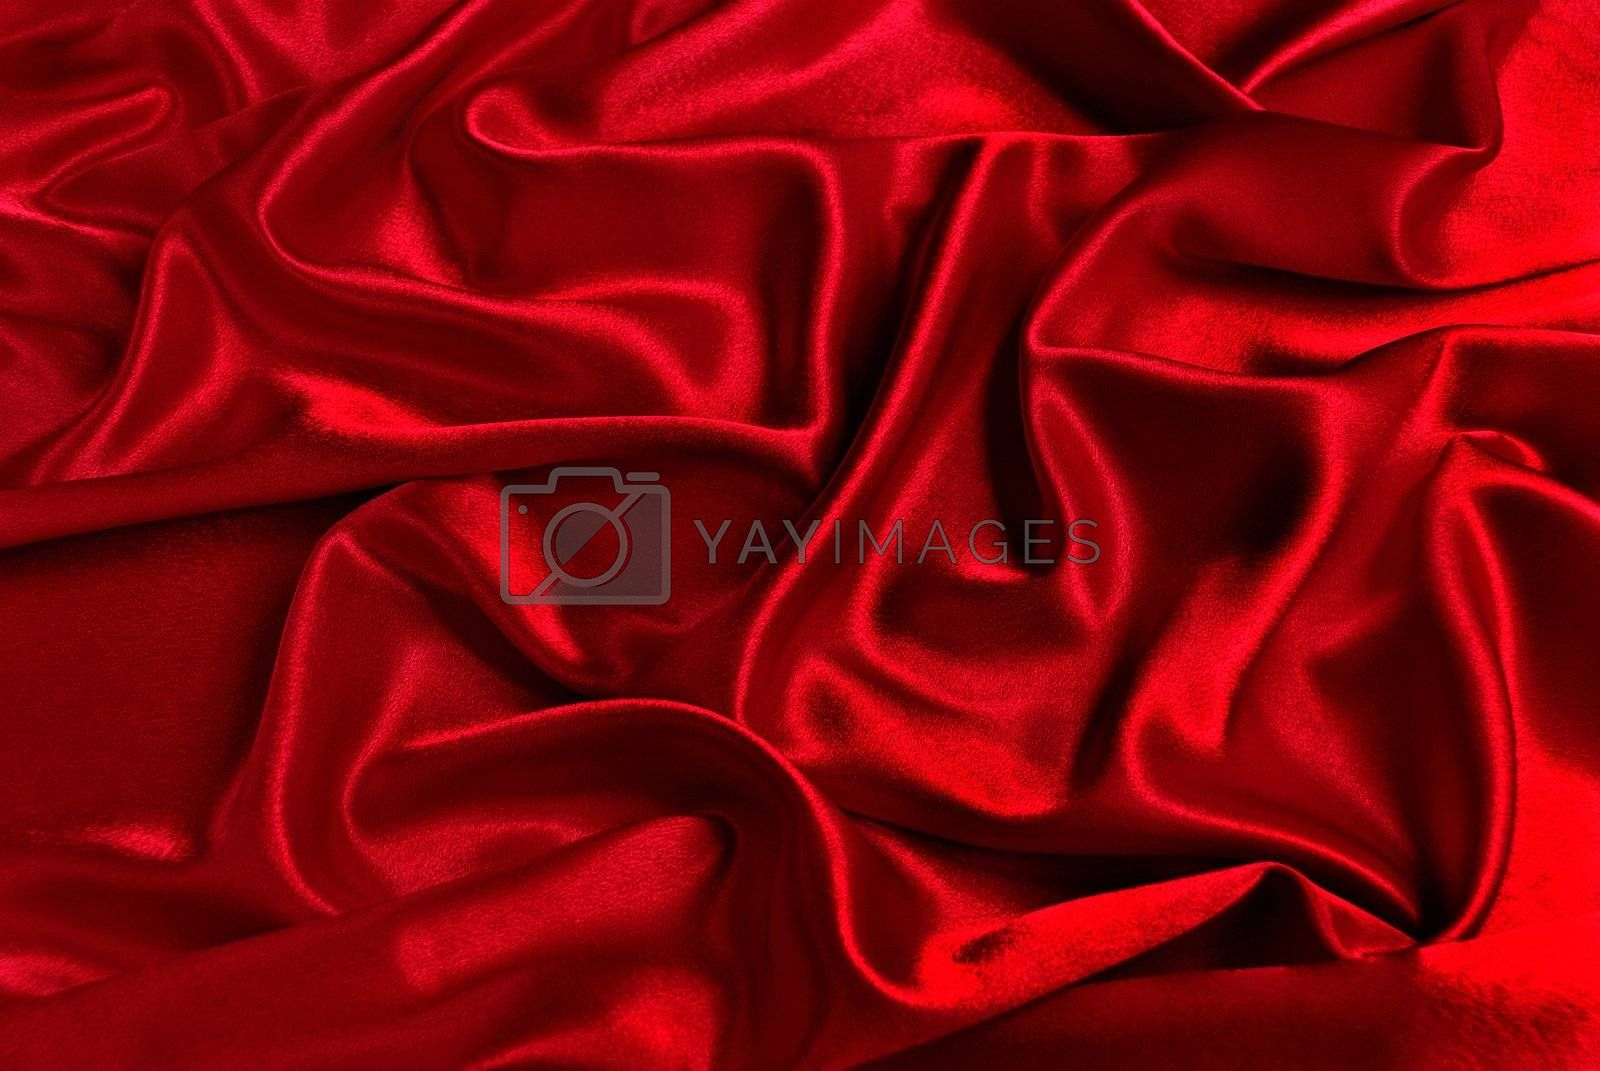 Red satin with a folds